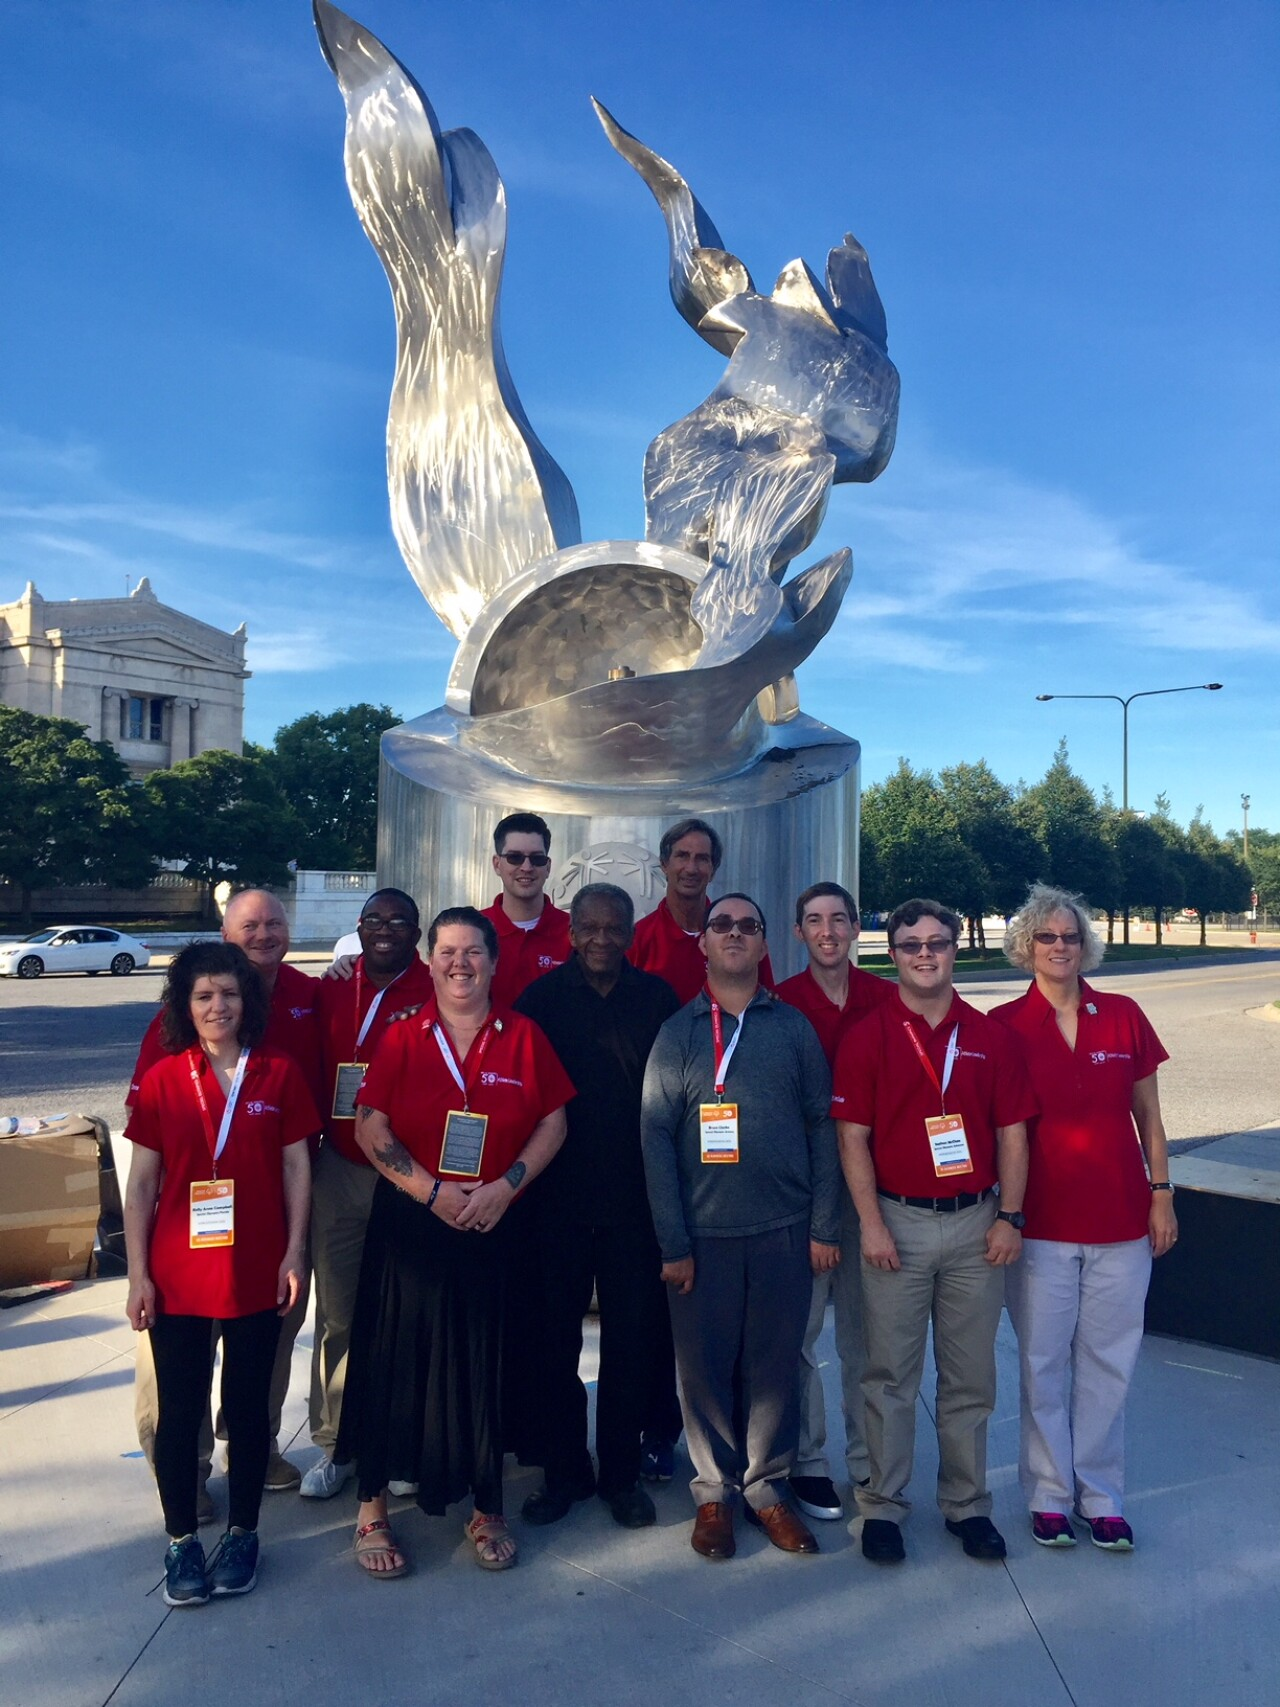 SONA (group in front of eternal flame): The United States Athlete Input Council met in Chicago for their annual meeting and had the pleasure of visiting the Eternal Flame site for the Special Olympics 50th Anniversary celebration.